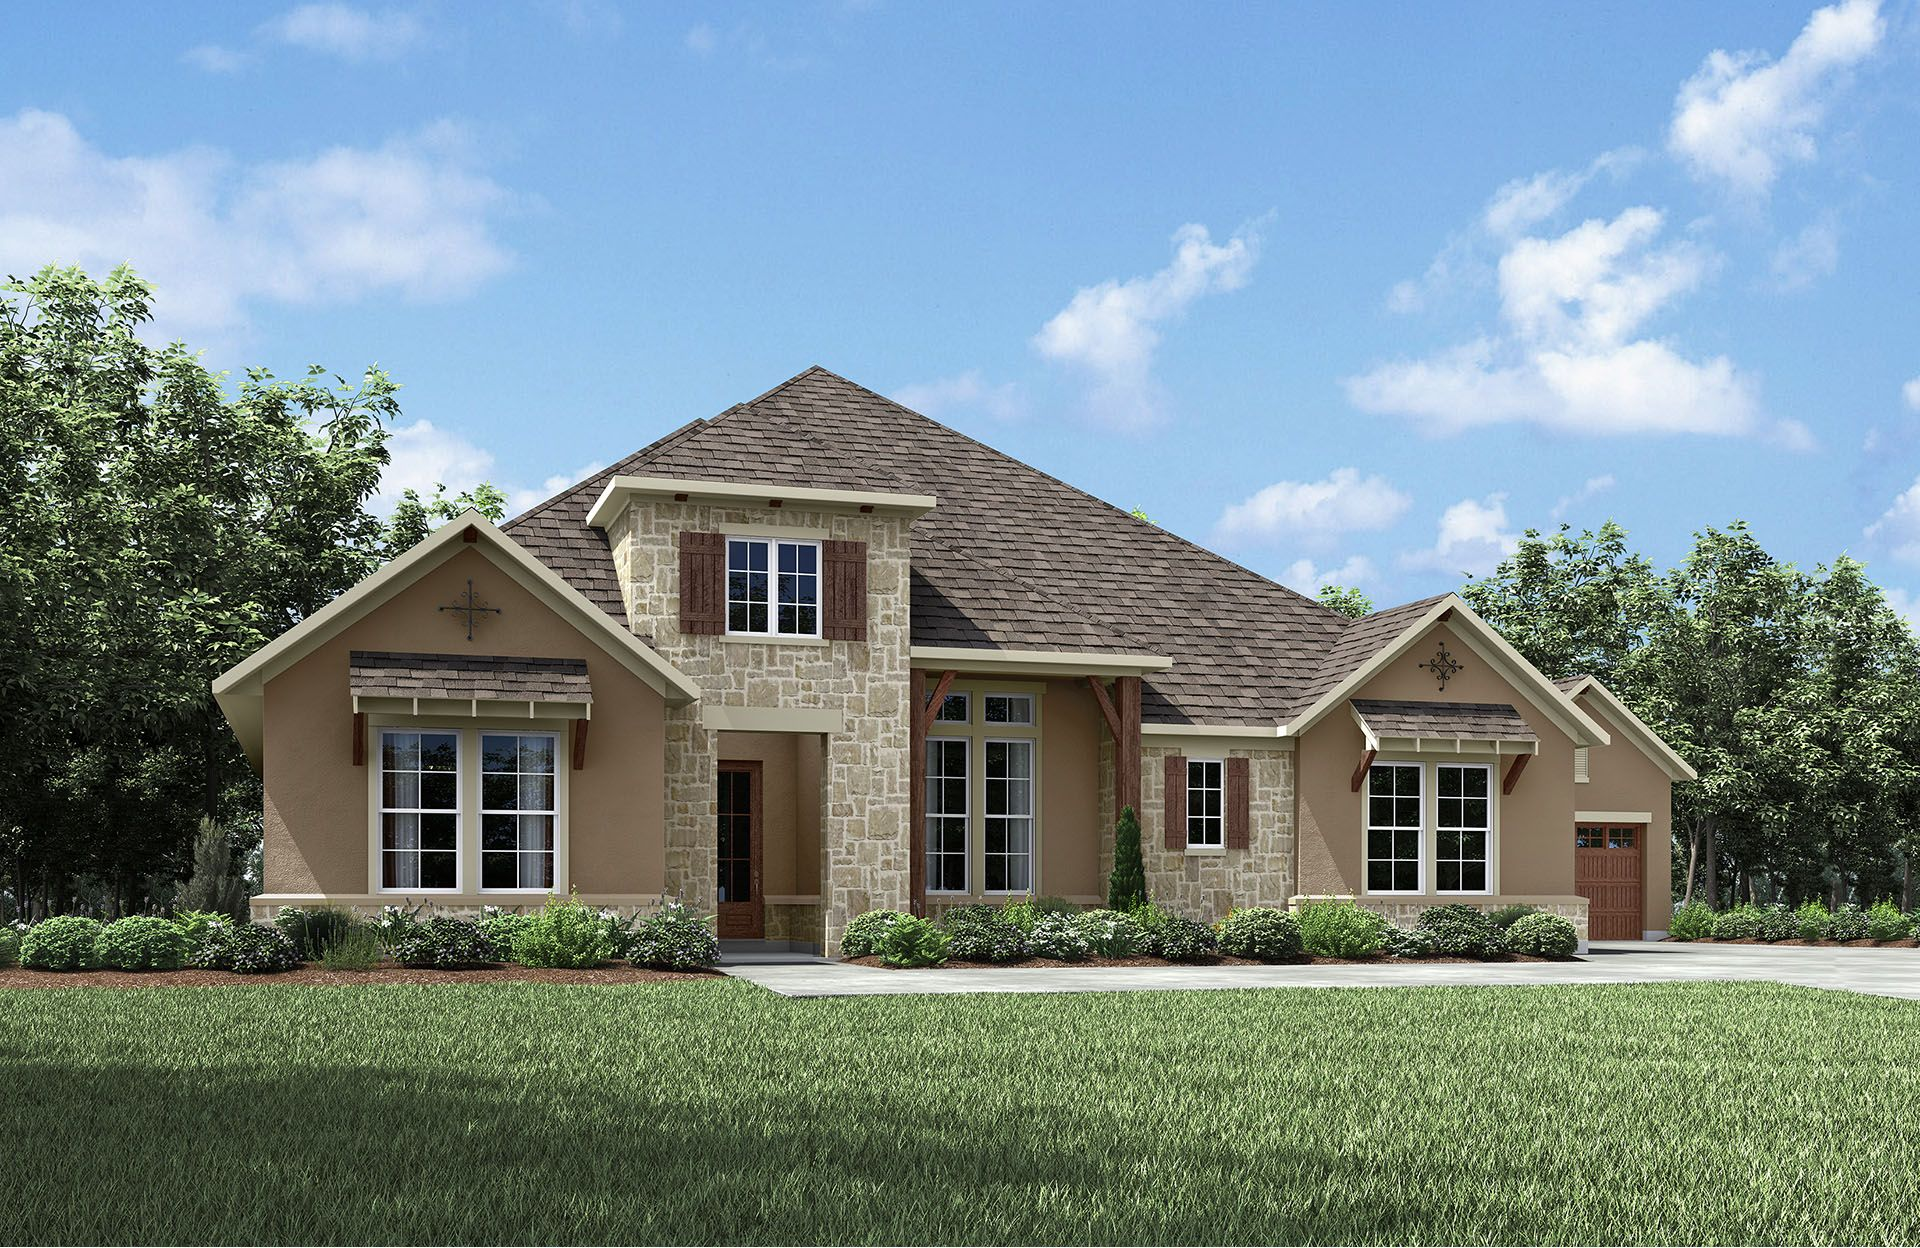 Single Family for Active at Castella Ii 3229 Floral Garden Lane Porter, Texas 77365 United States